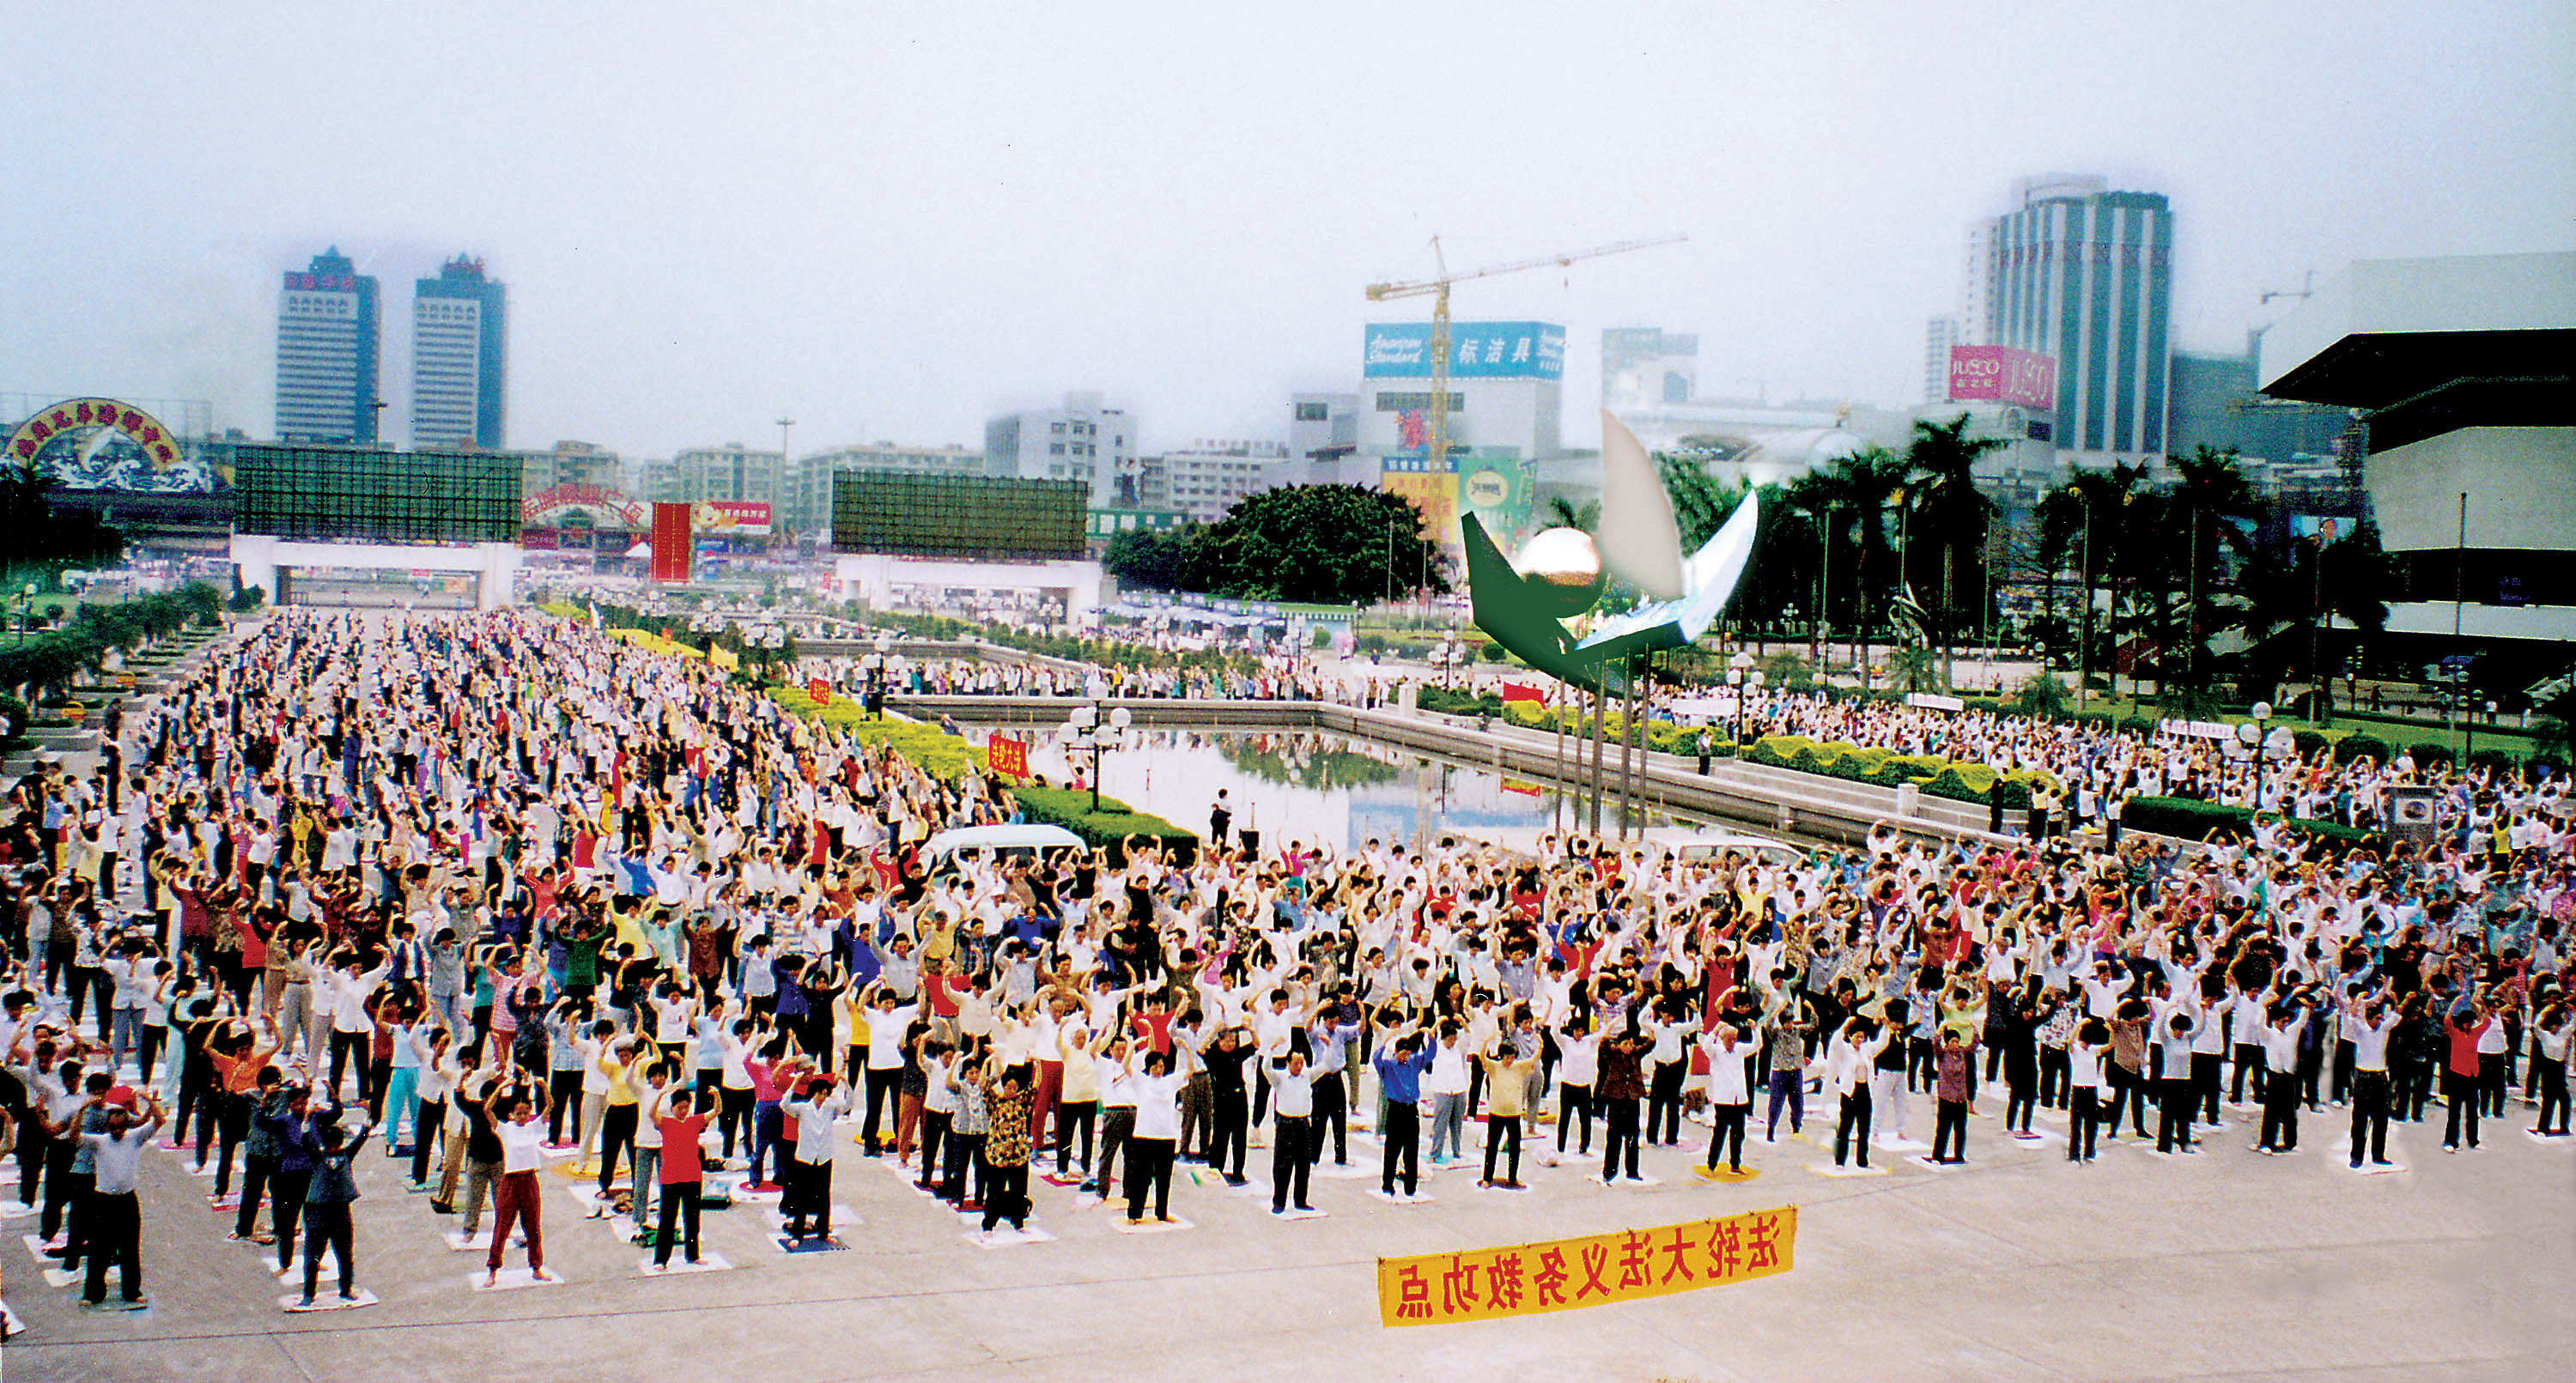 By the mid-1990s, Falun Gong exercise sites like this one in Guangzhou were a common site throughout China.